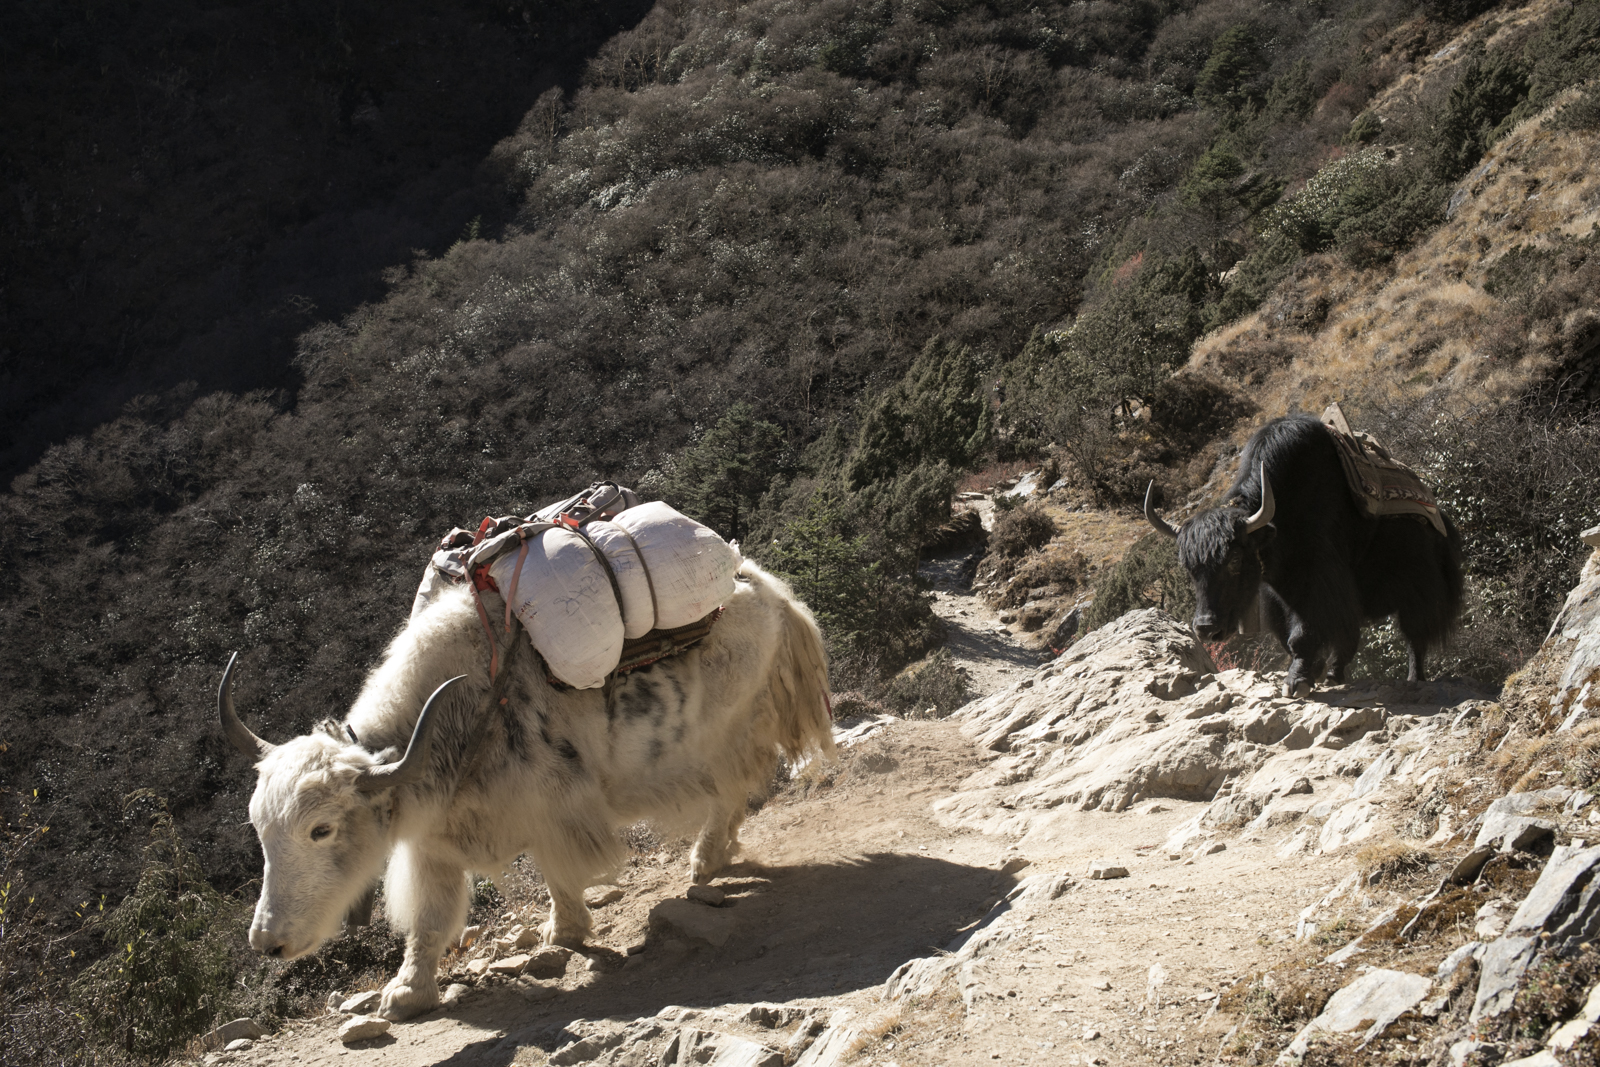 Yak along the trail to Phortse.